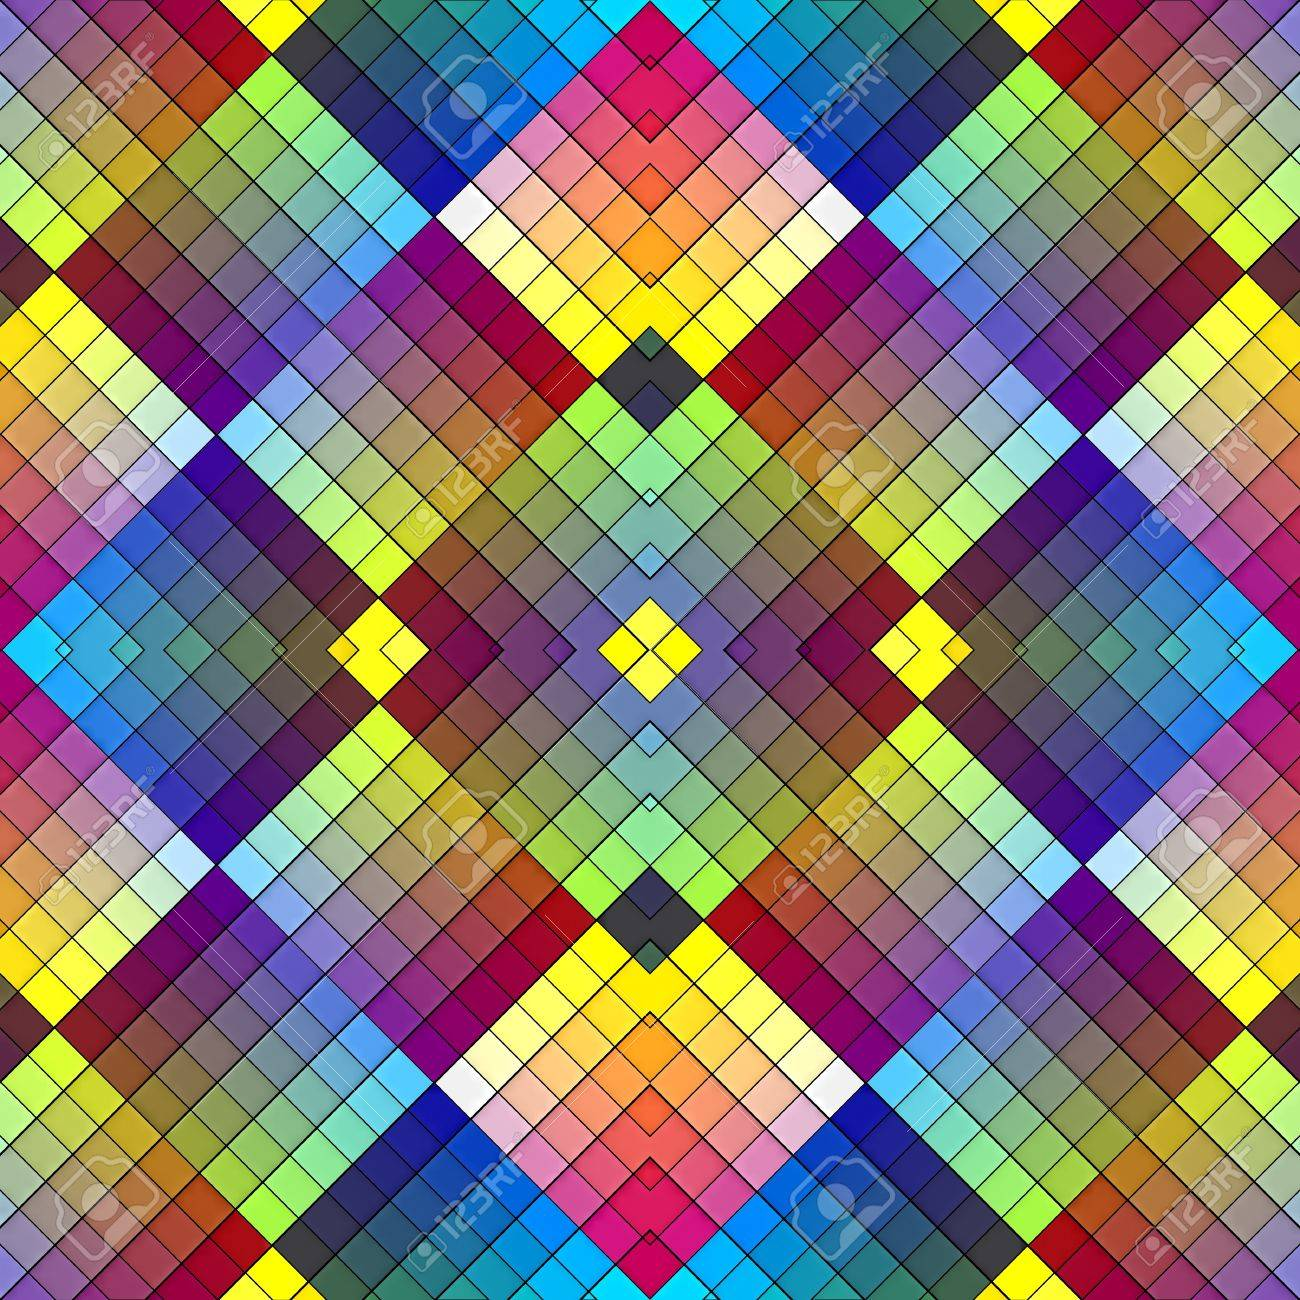 Art deco mosaic tile in retro style. Seamless pattern in vivid rainbow colors for wallpaper, decoration, stain glass Stock Photo - 12835947